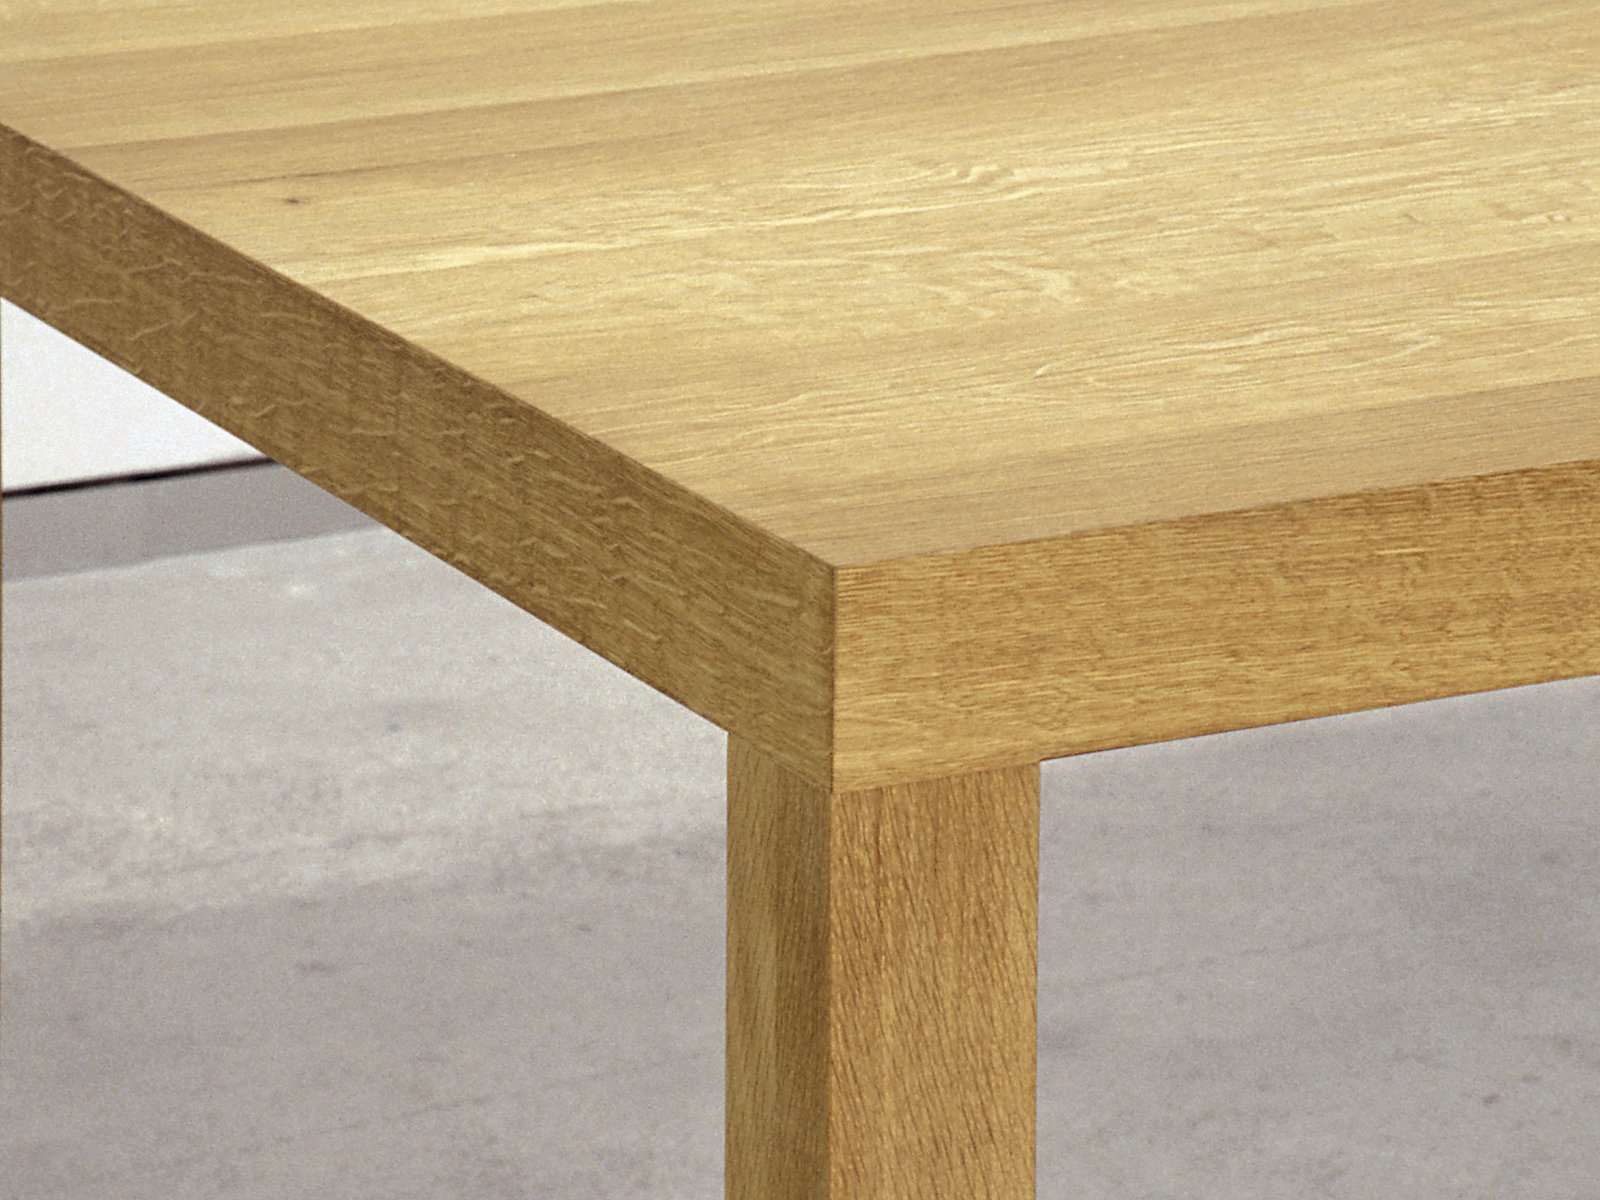 Solid wood table DINAVIER by Sanktjohanser design Matthias Hubert Sanktjohanser